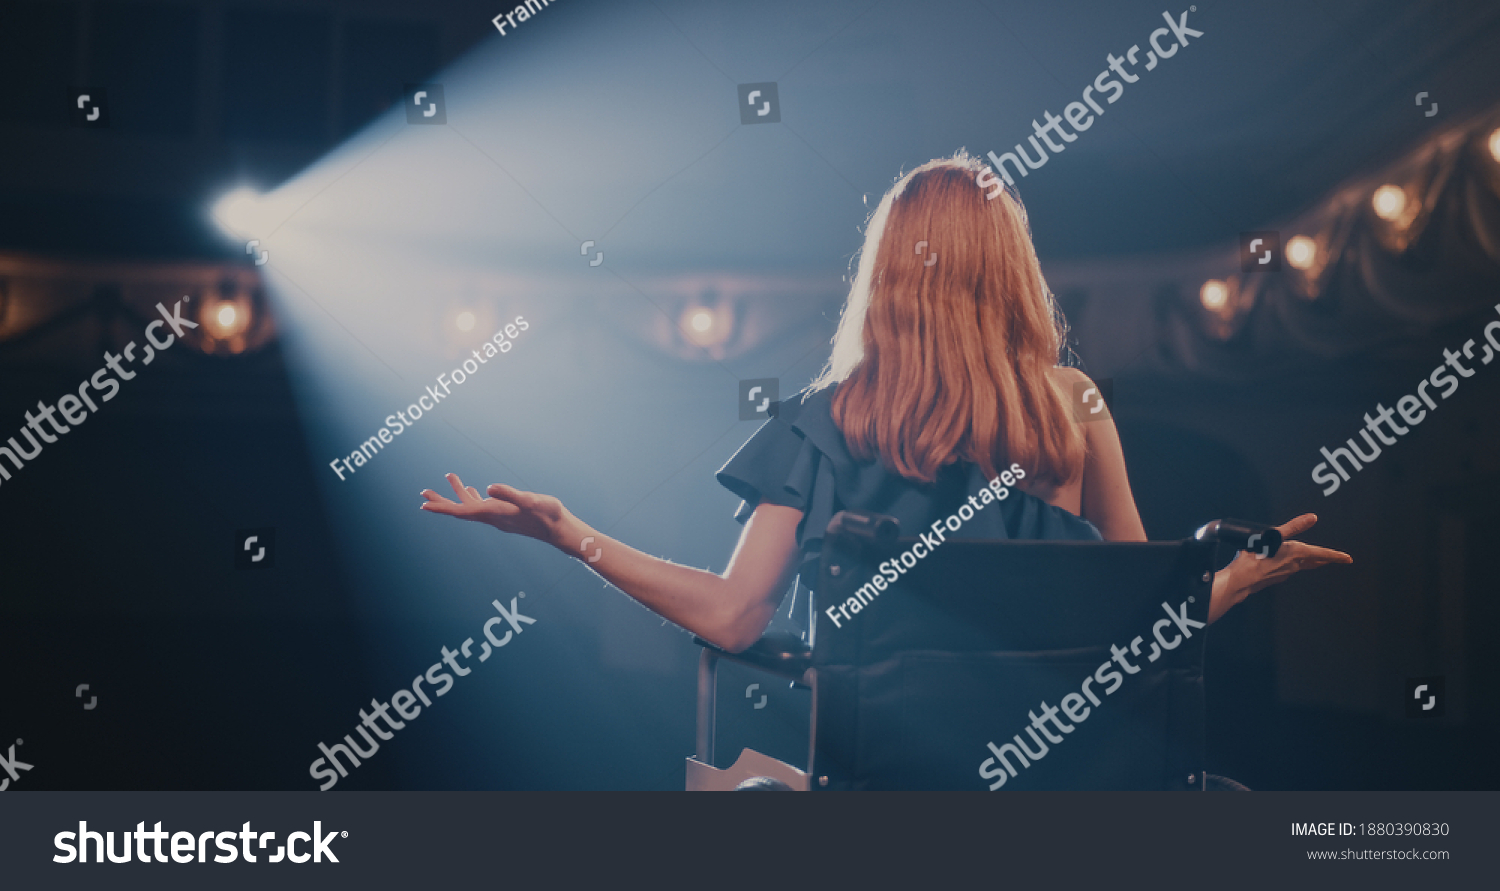 Pan left view of young woman smiling and gesticulating while sitting on wheelchair in spotlight and talking to audience during performance in dark theater #1880390830